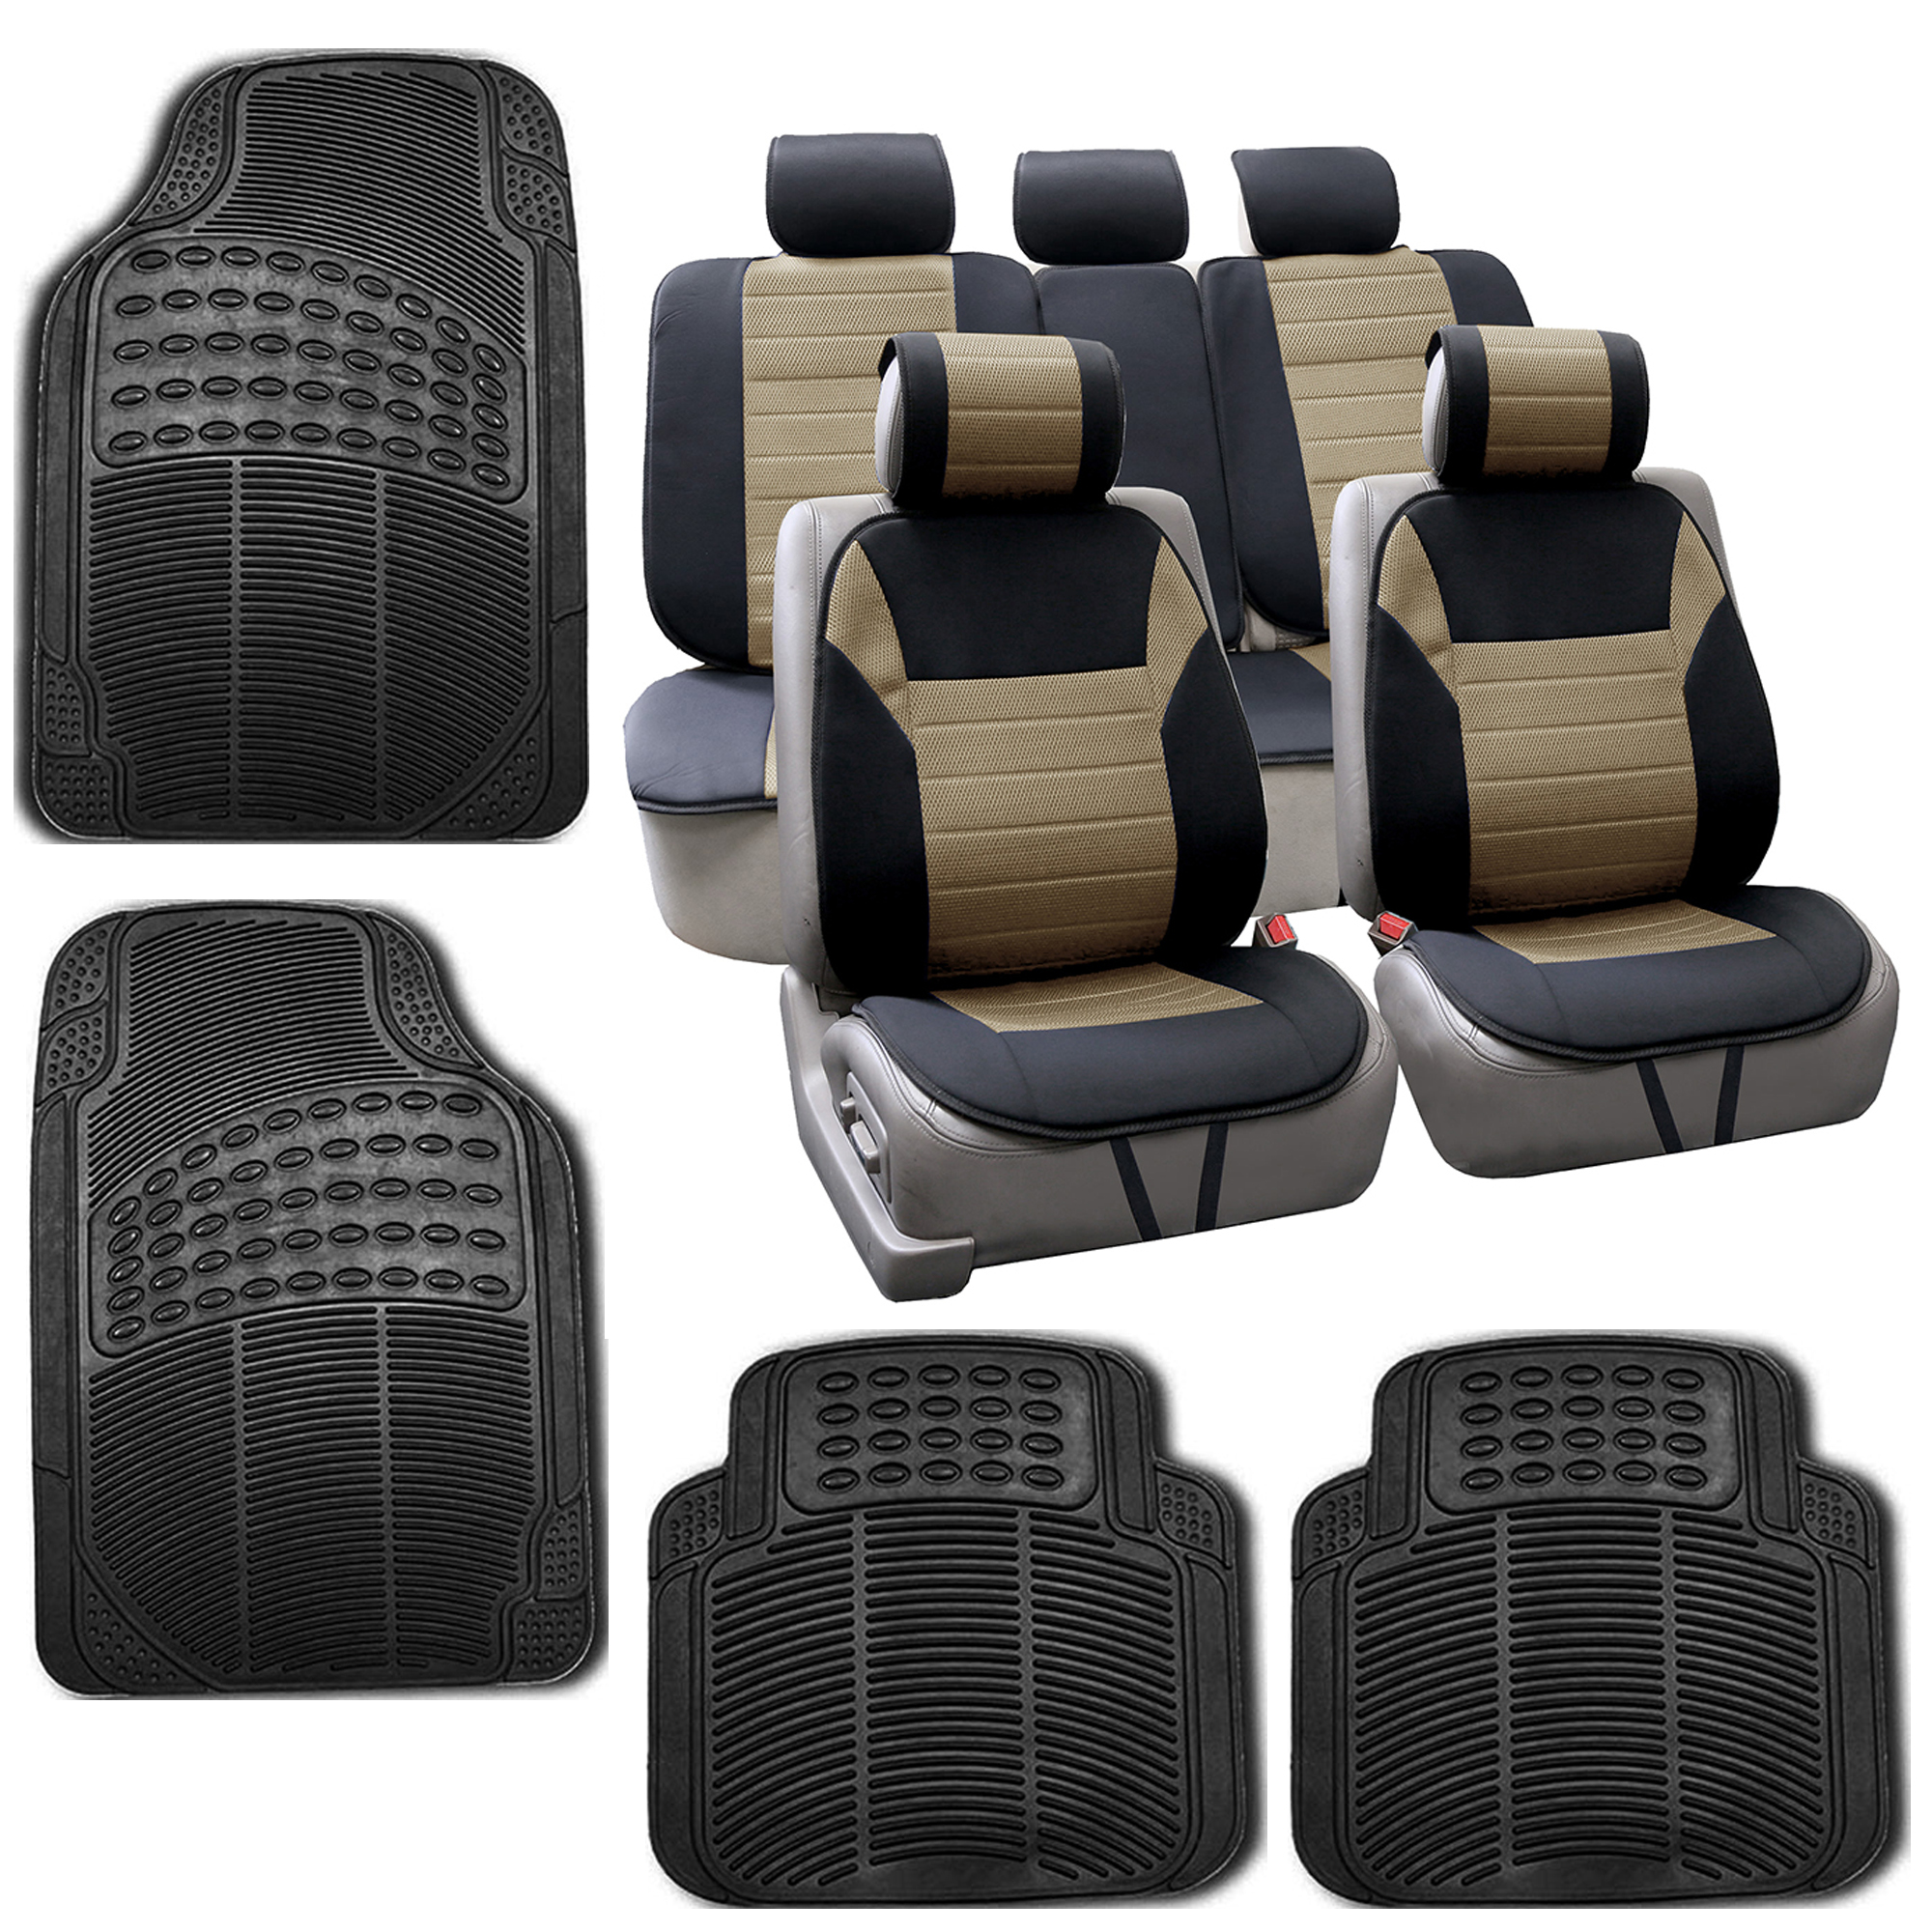 car seat covers top quality car seat cushion pads rubber floor mat set ebay. Black Bedroom Furniture Sets. Home Design Ideas